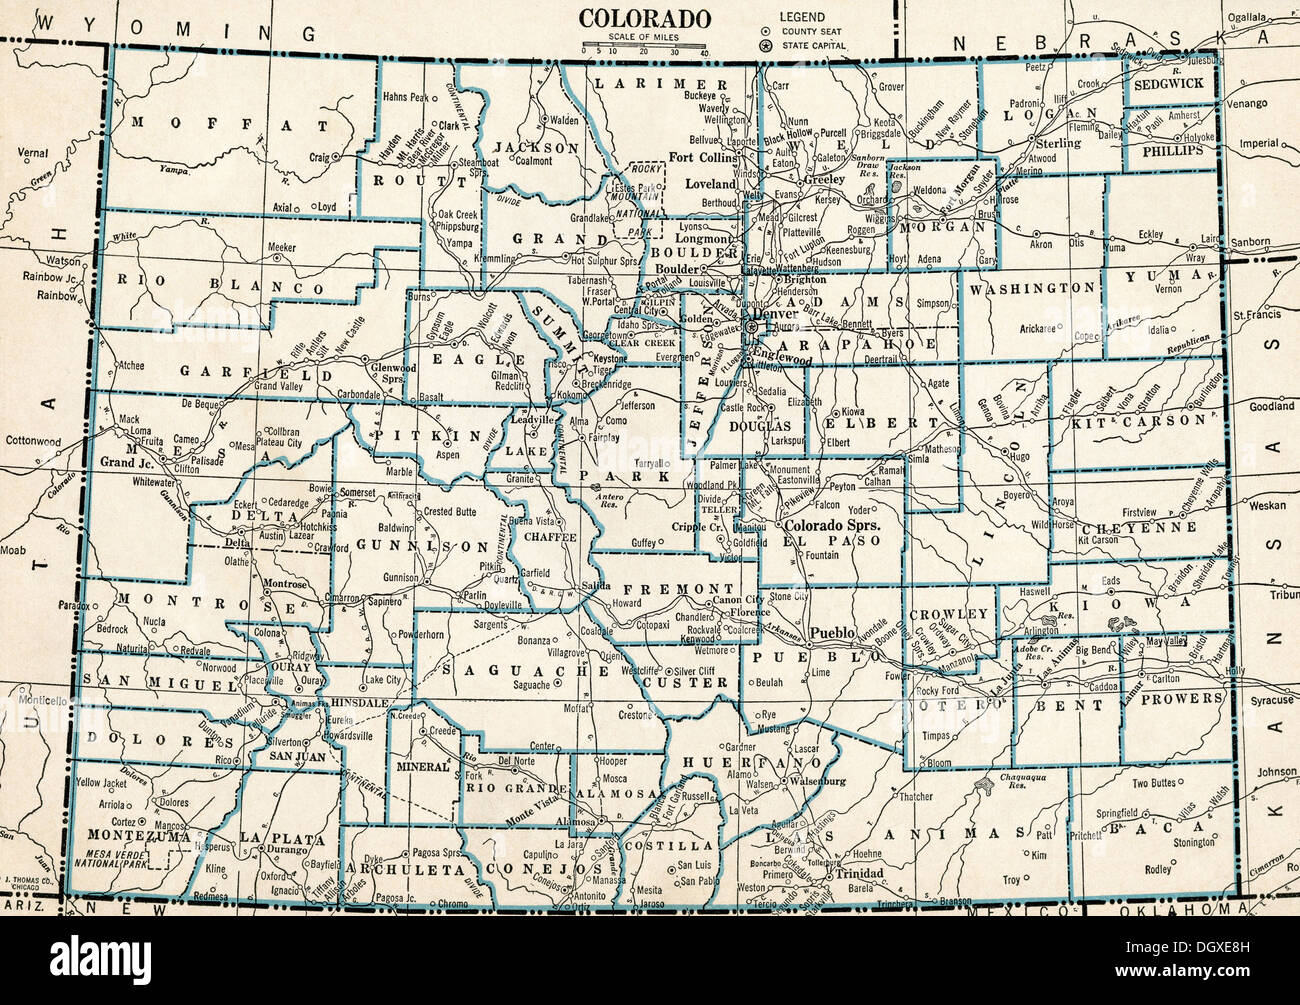 Old Map Of Colorado State S Stock Photo Royalty Free Image - Colorado state map